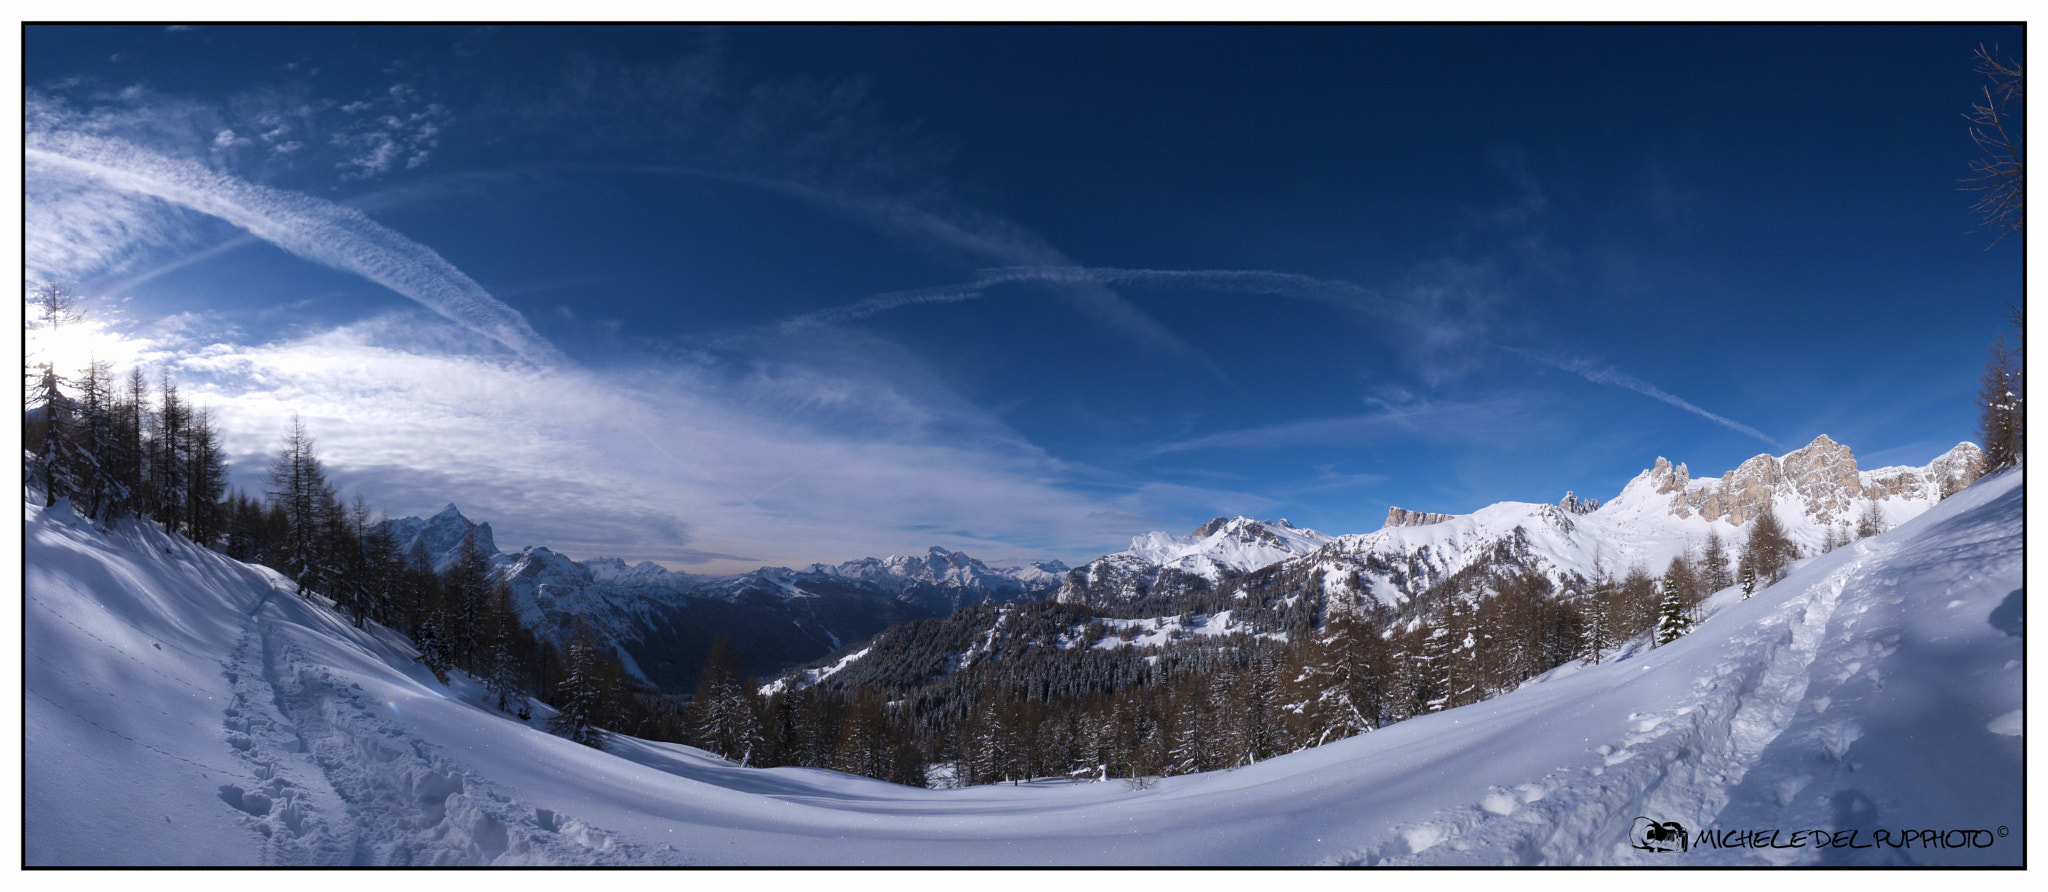 Photograph To Civetta Pano by Michele Del Pup on 500px